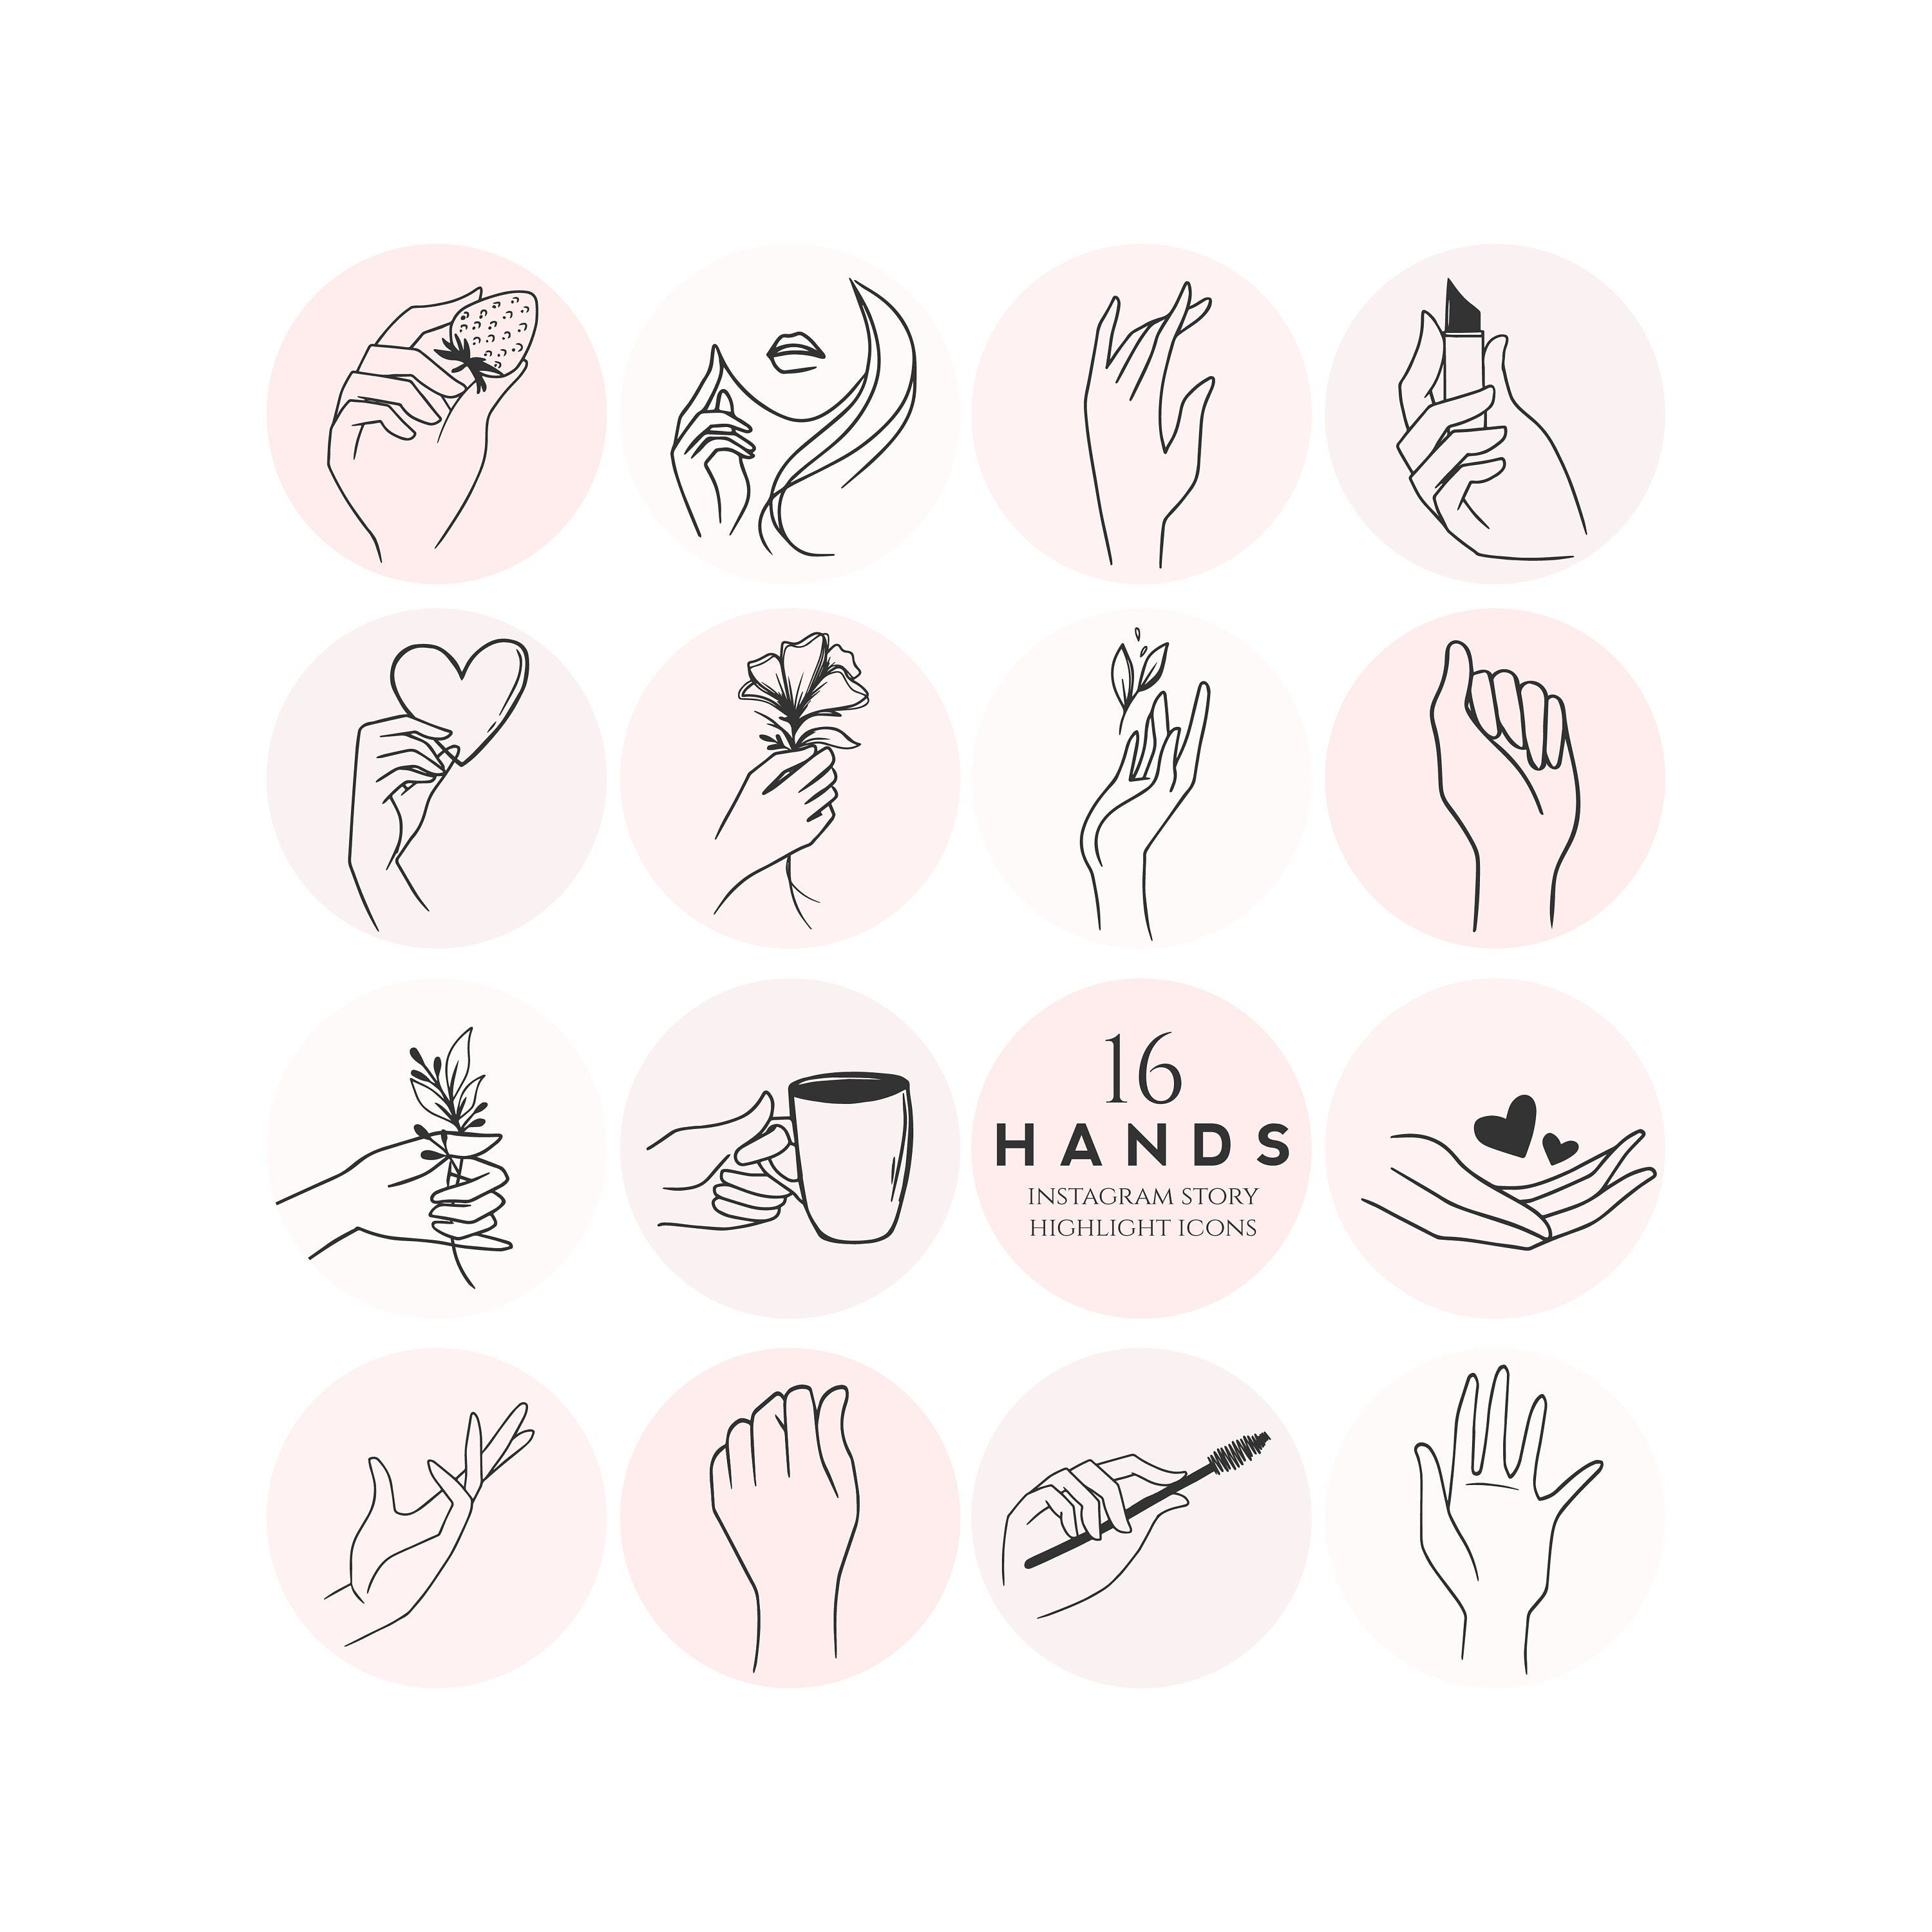 Hands Instagram Story Highlight Icons pink sketch farm